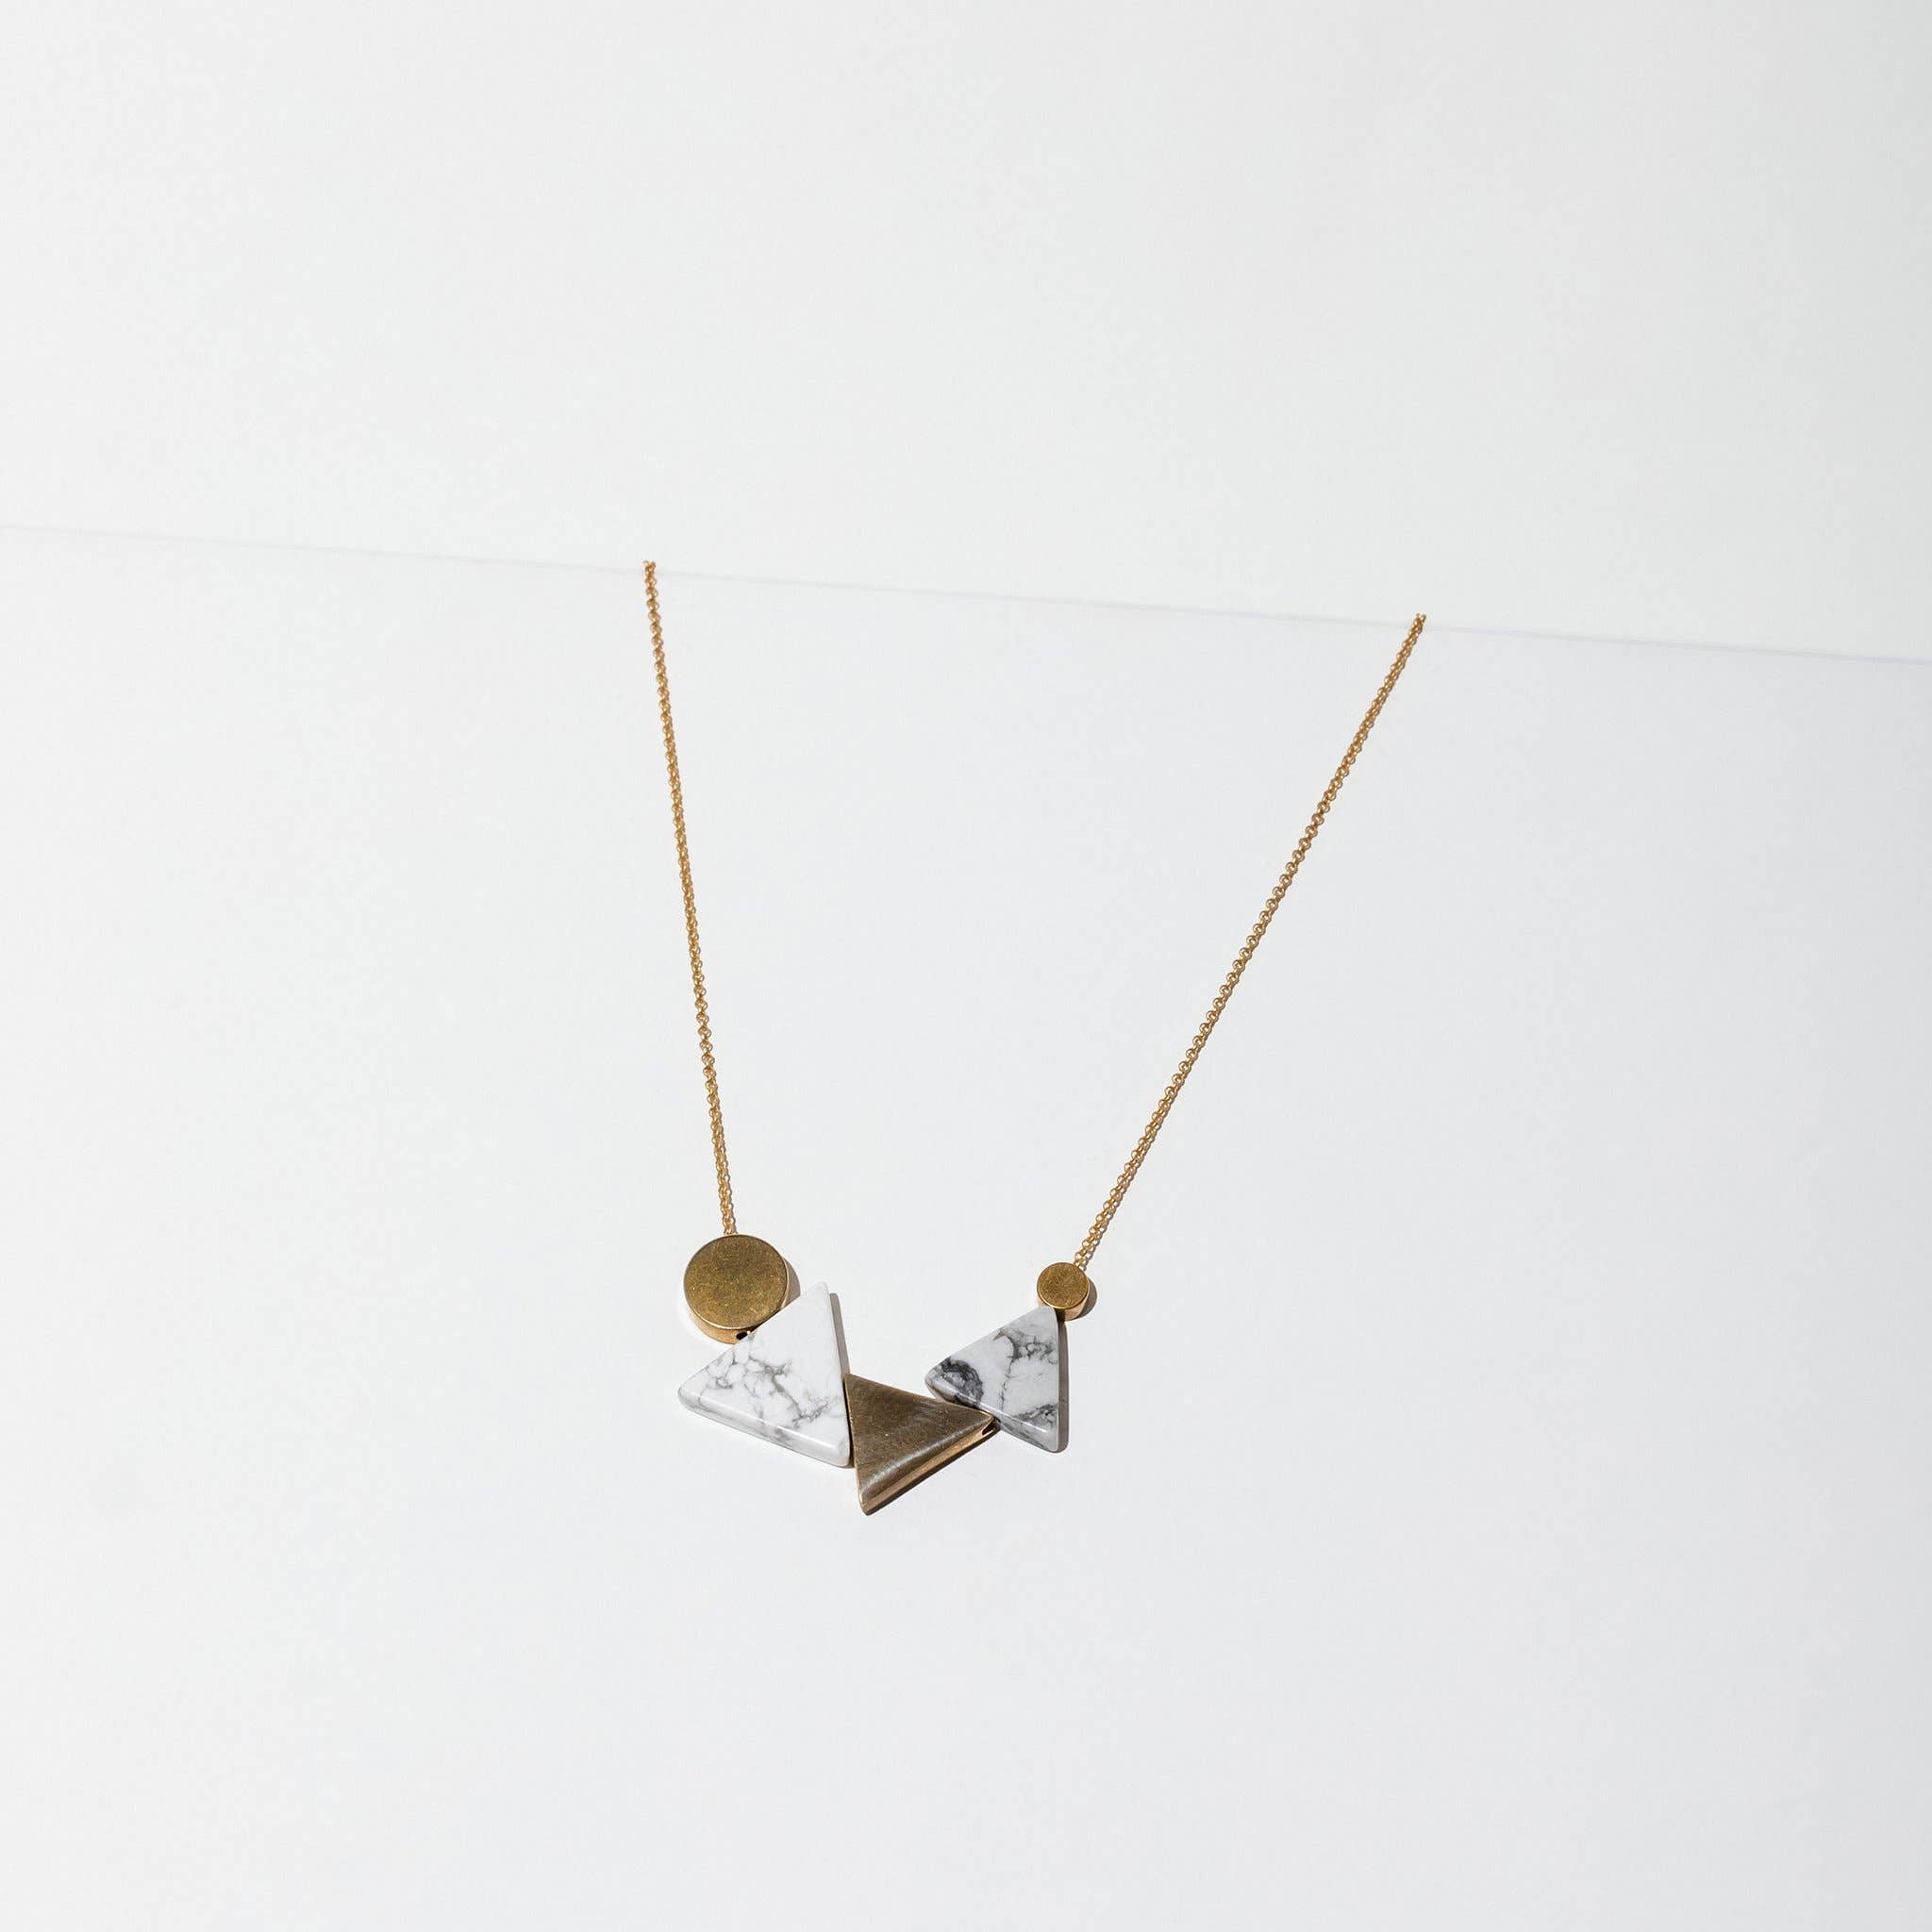 Klee Necklace